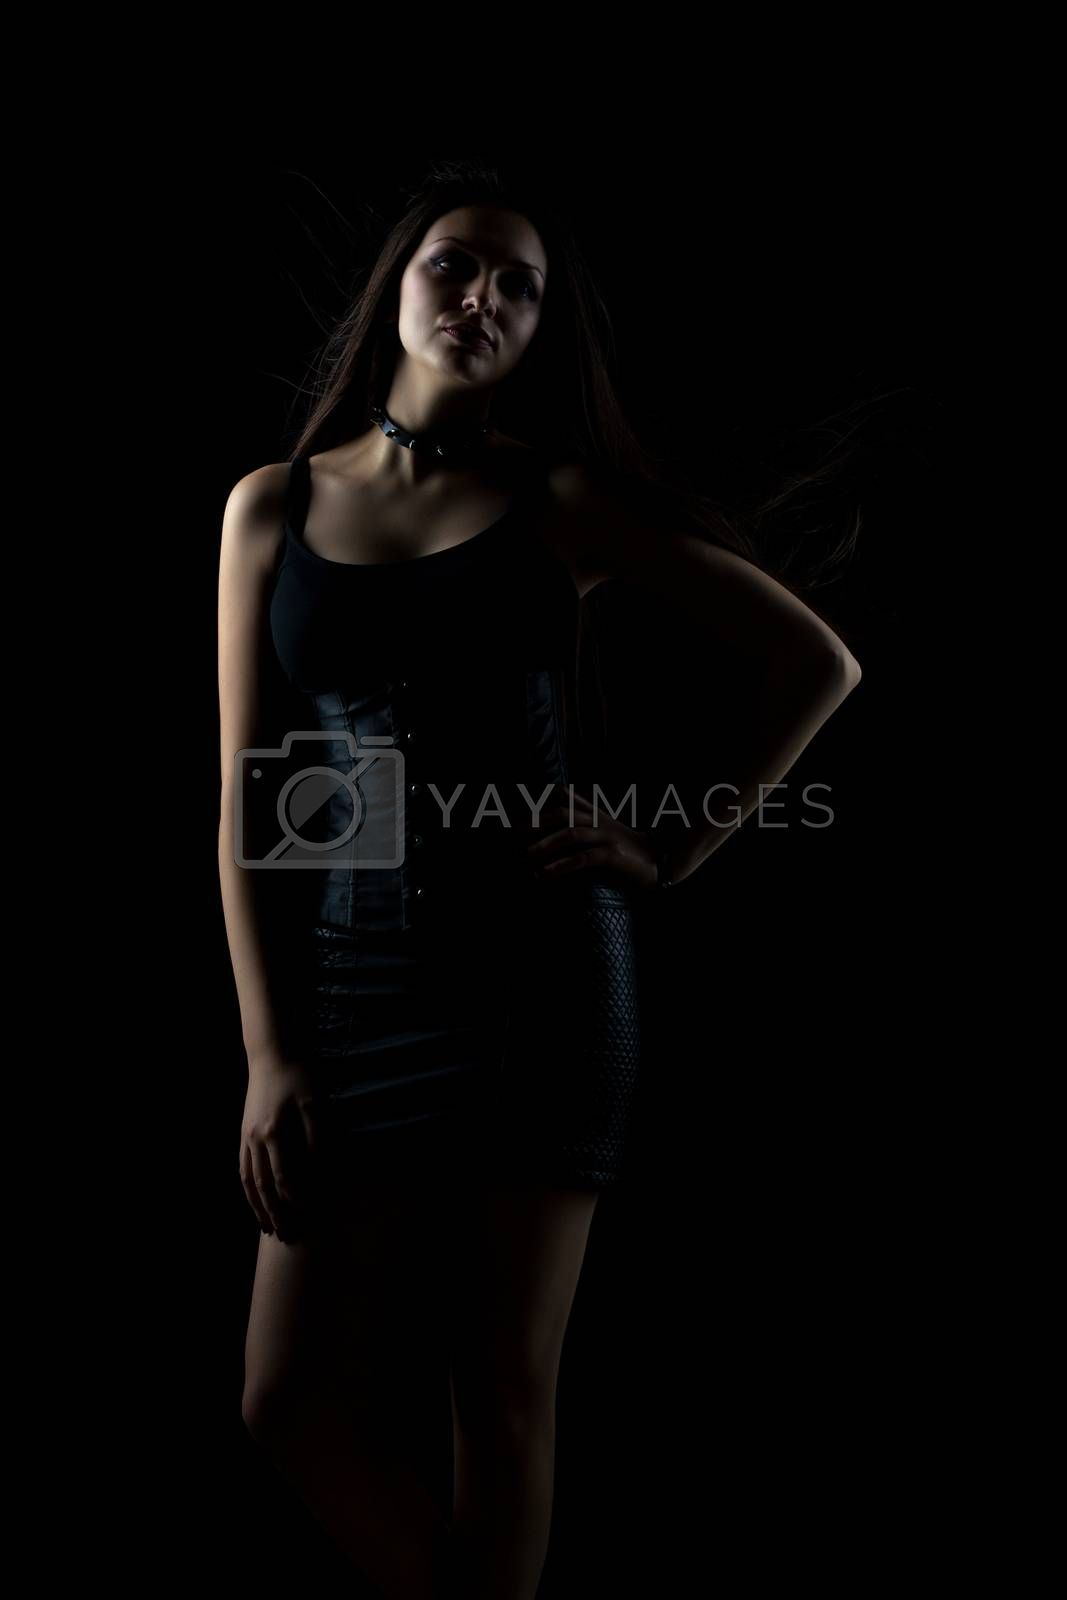 portrait of young sexy girl with long hair on dark background in studio, goth style